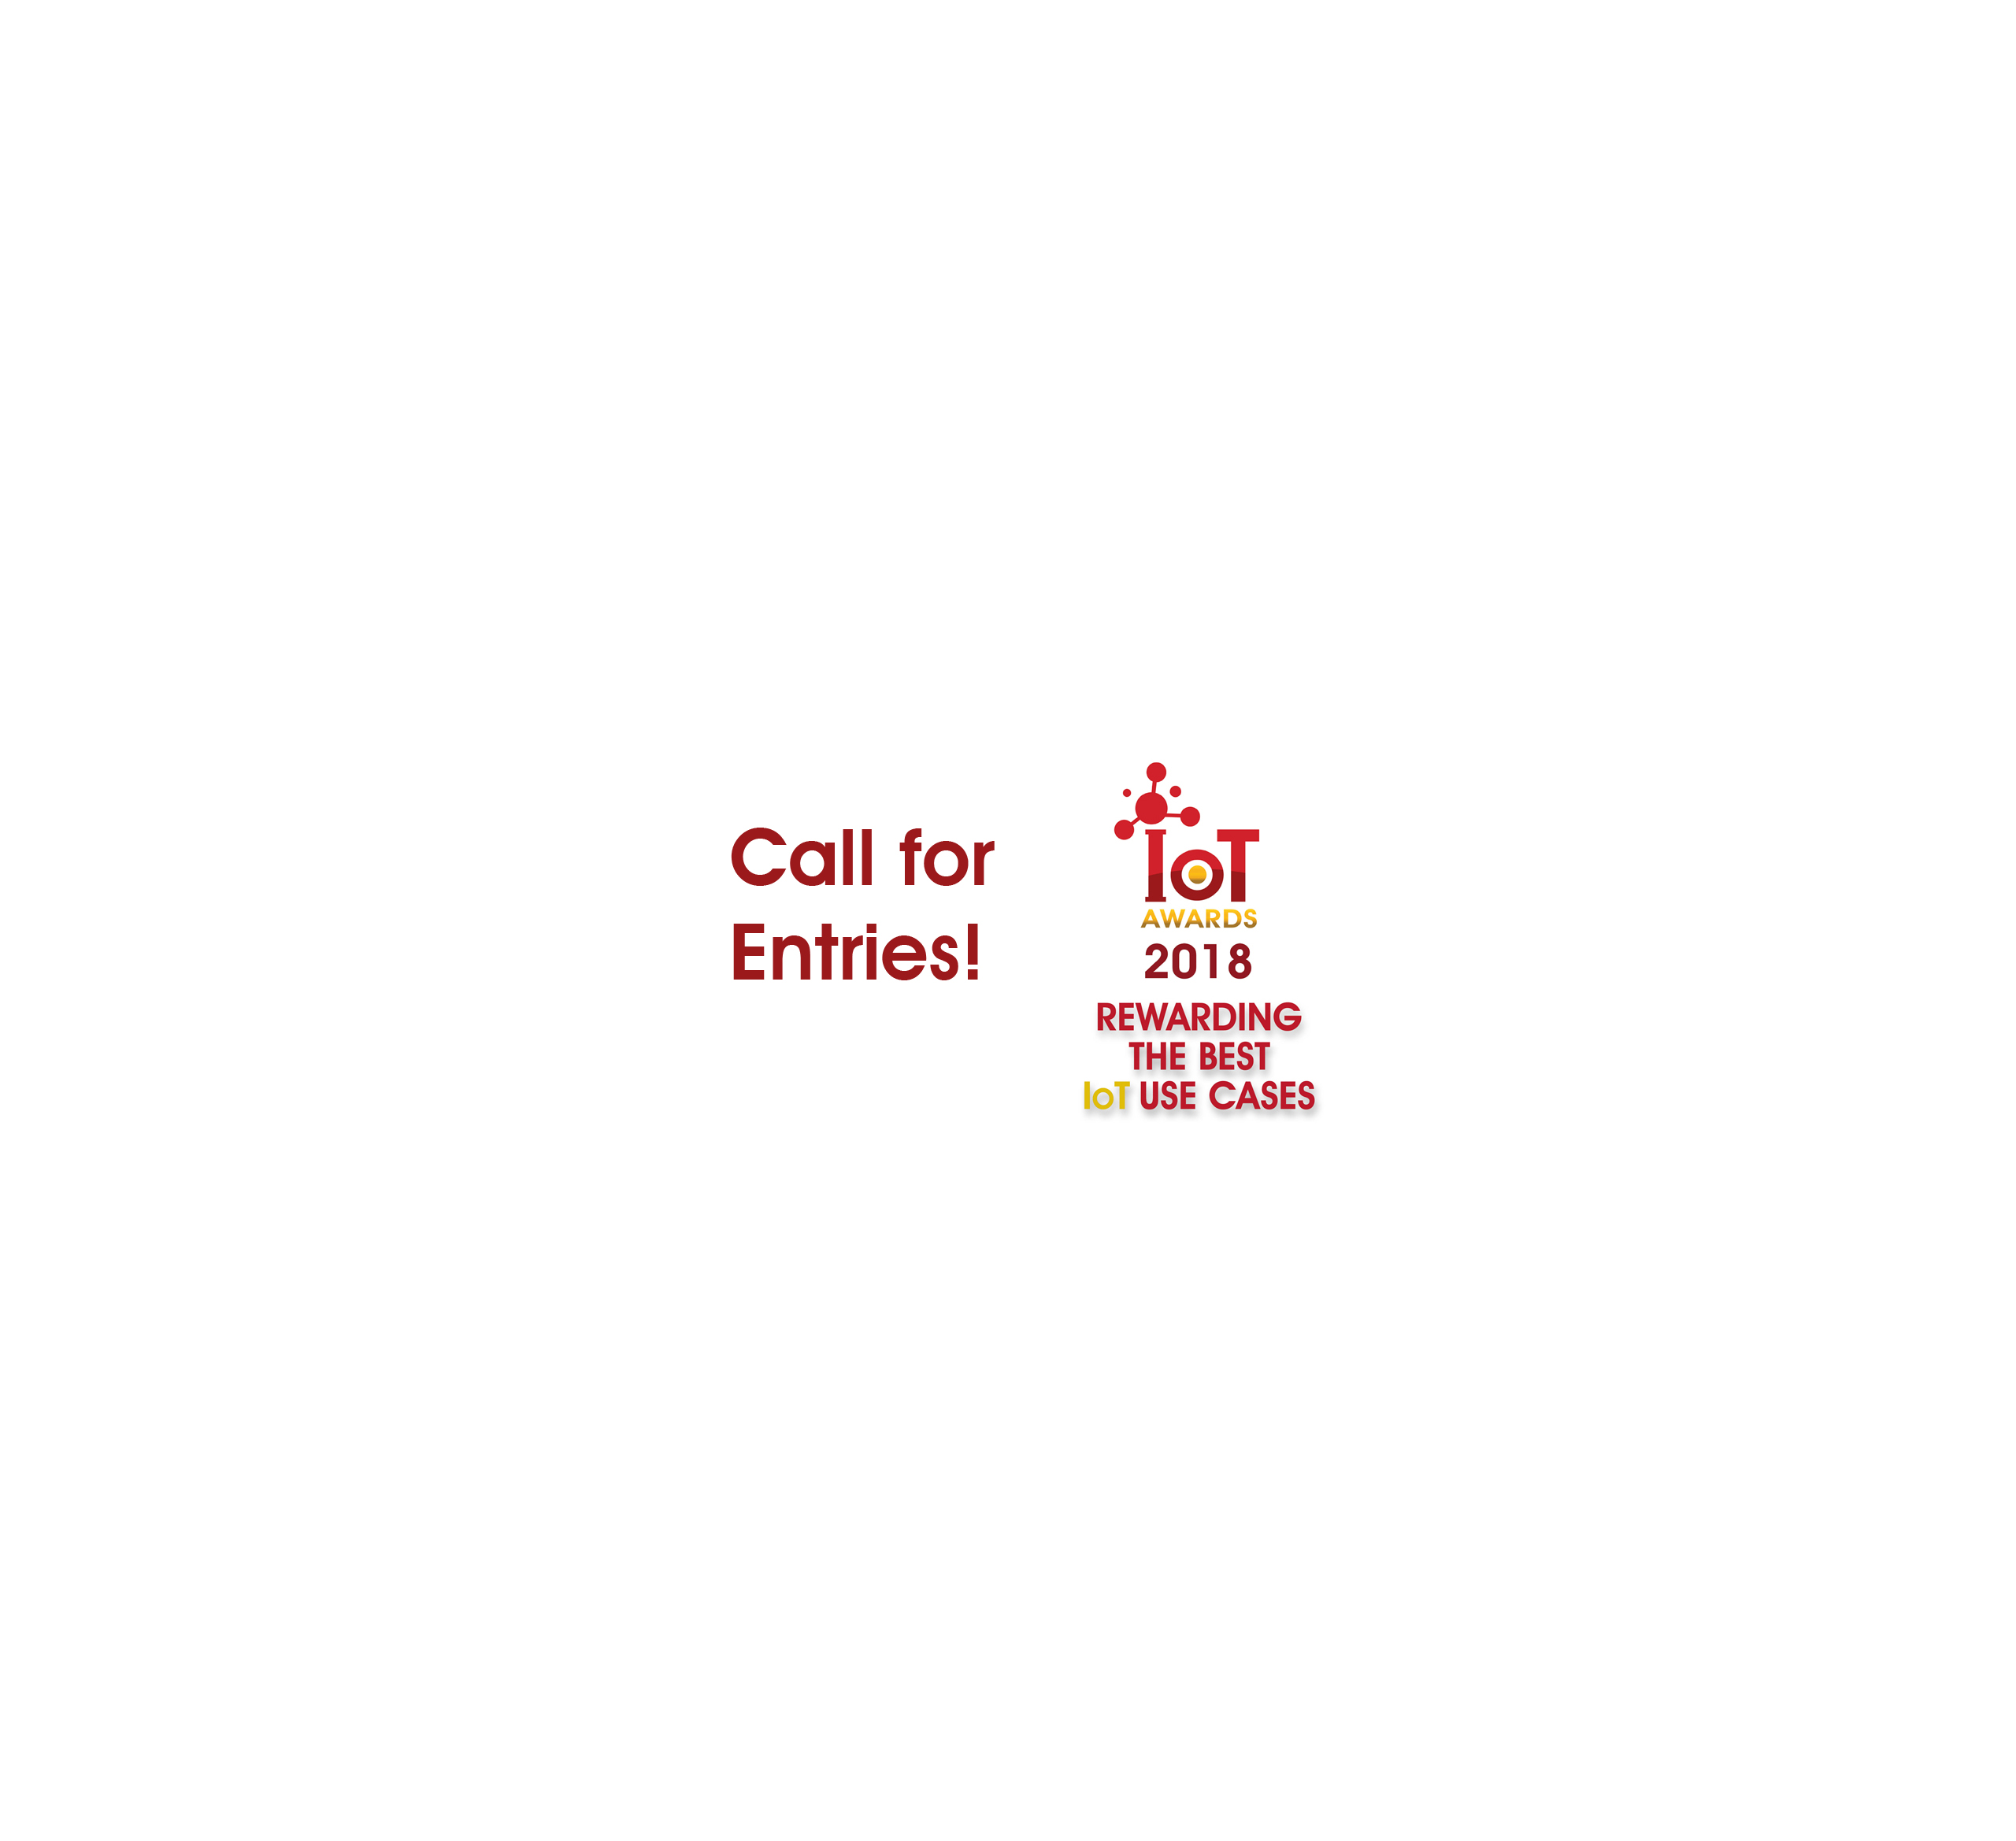 IoT Awards 2018 Call for Entries